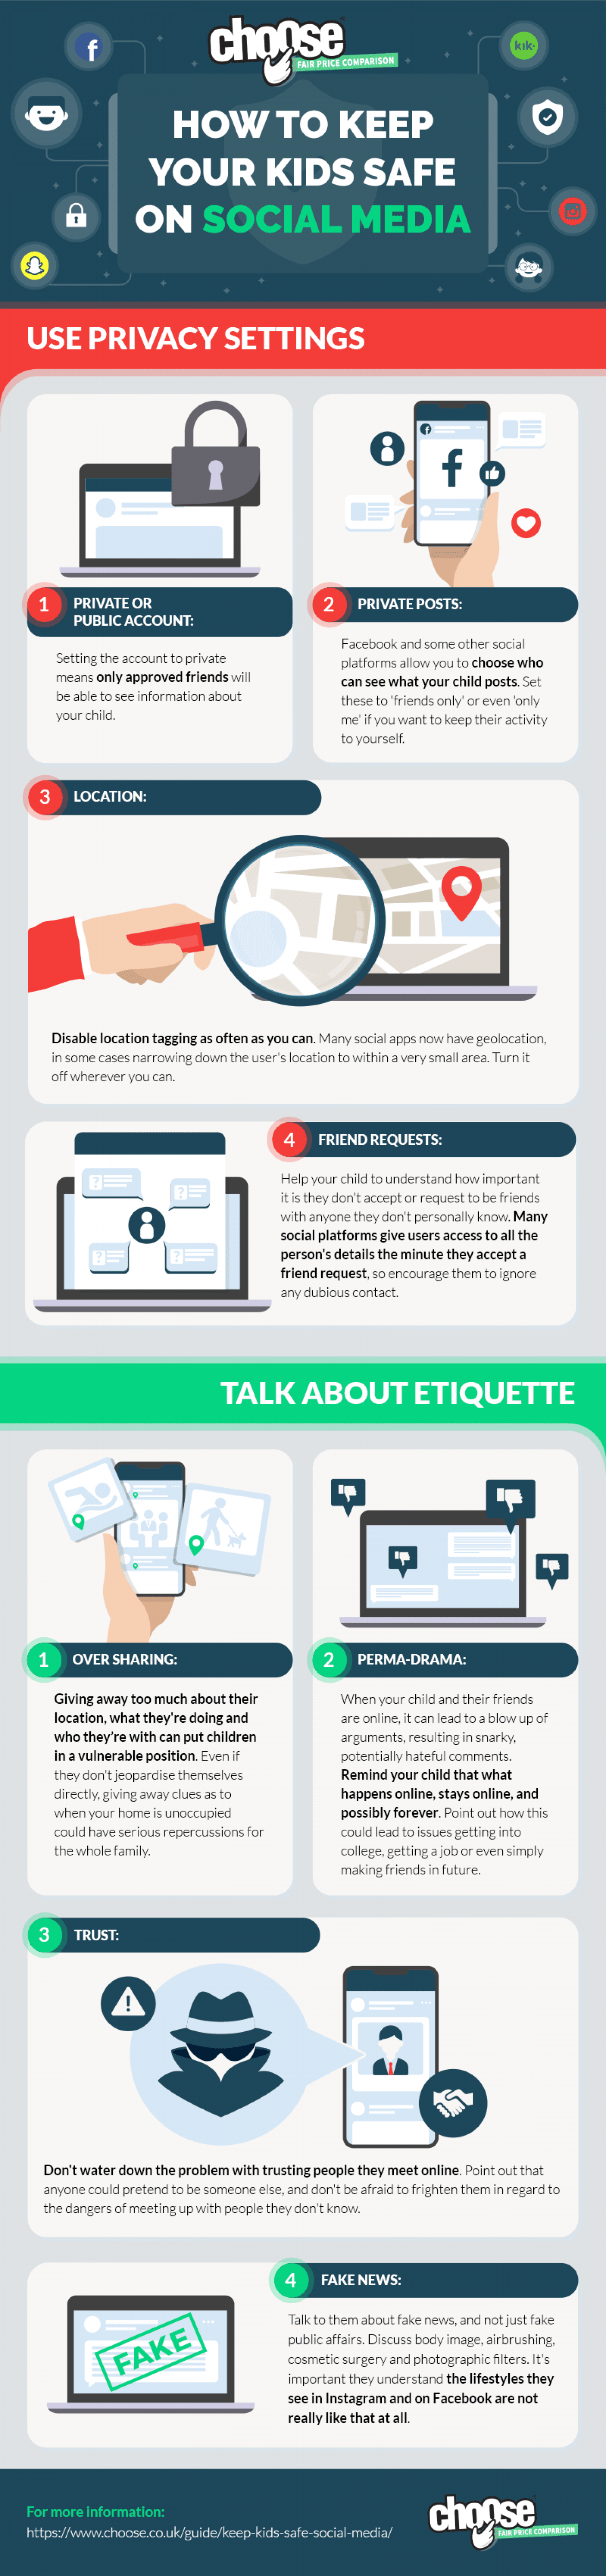 How to keep kids safe on social media Infographic